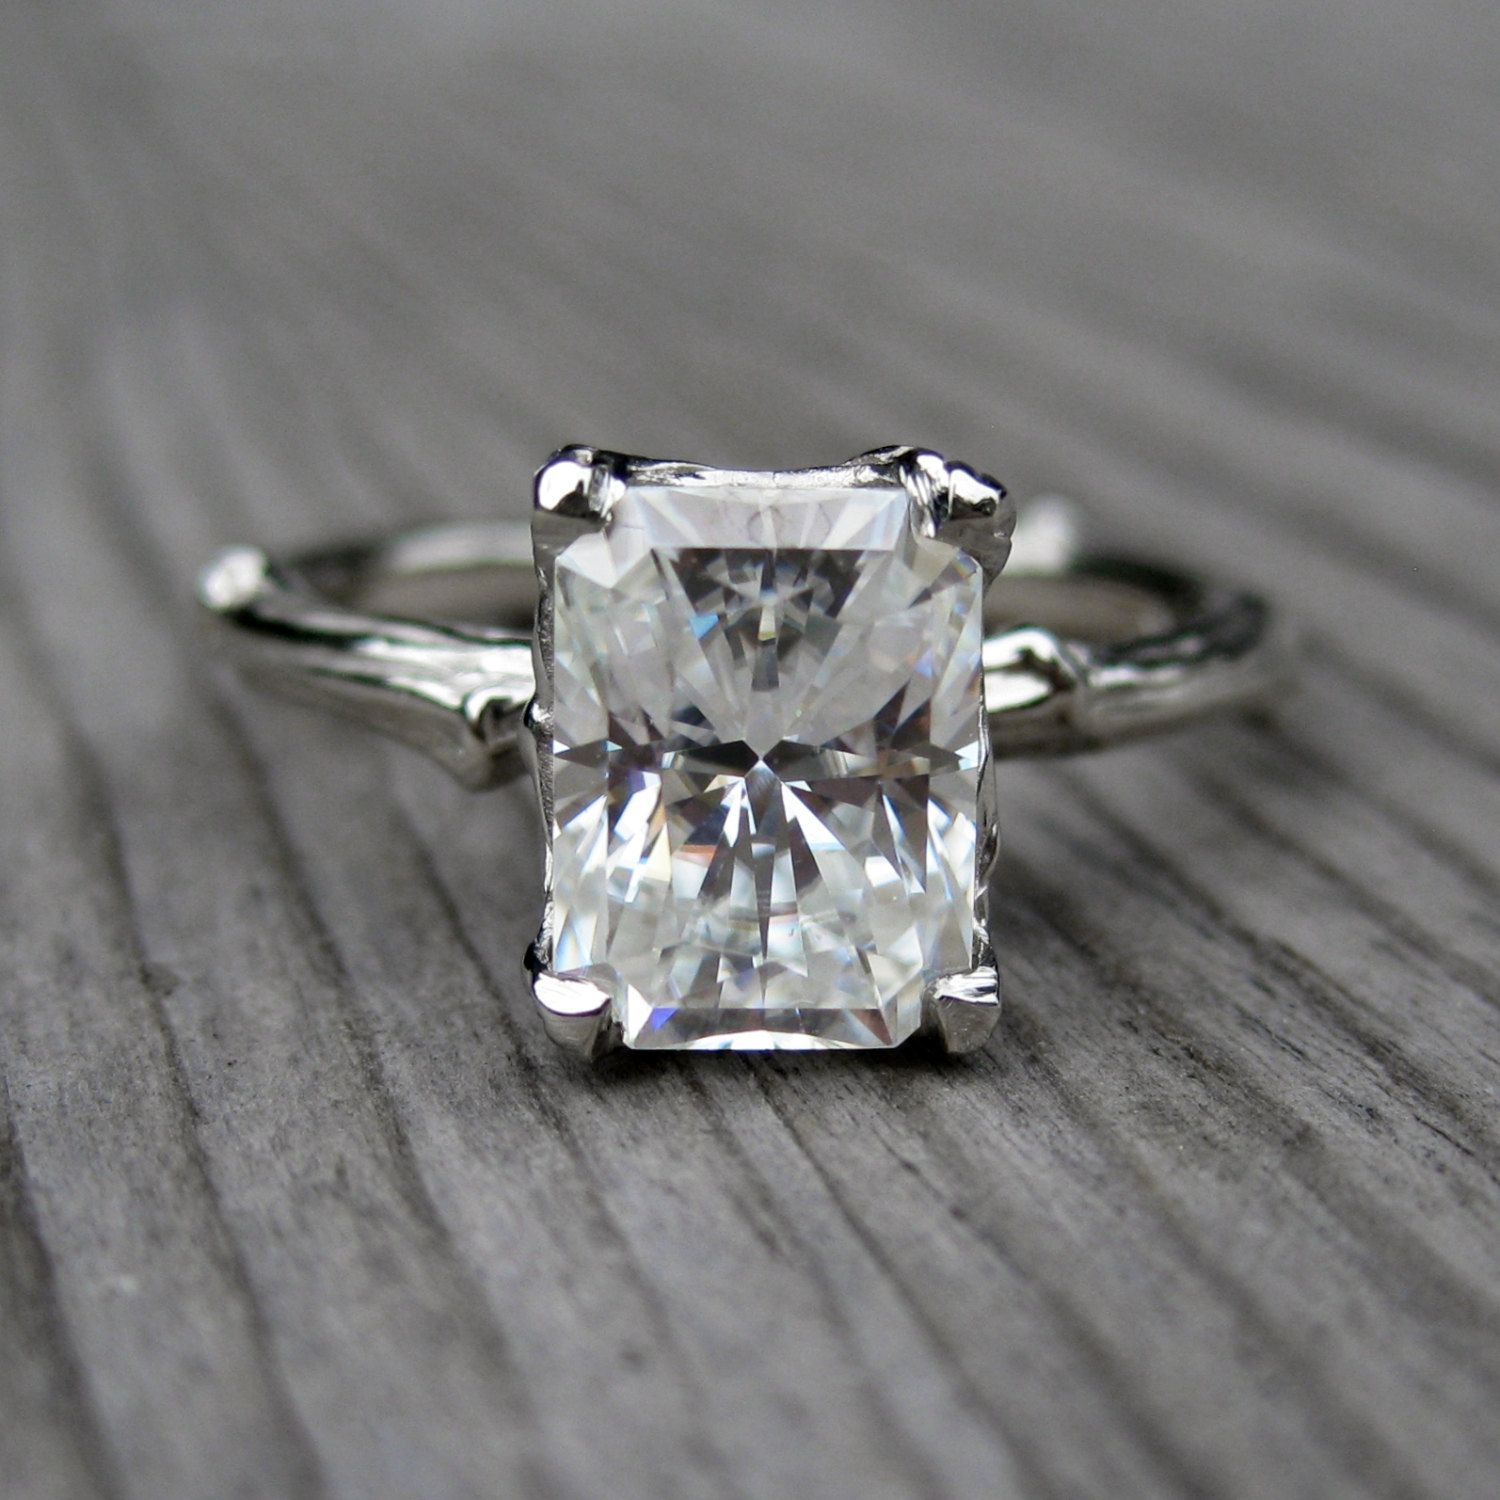 1000+ images about Diamonds on Pinterest | Twig engagement rings, Twist engagement  rings and Engagement rings